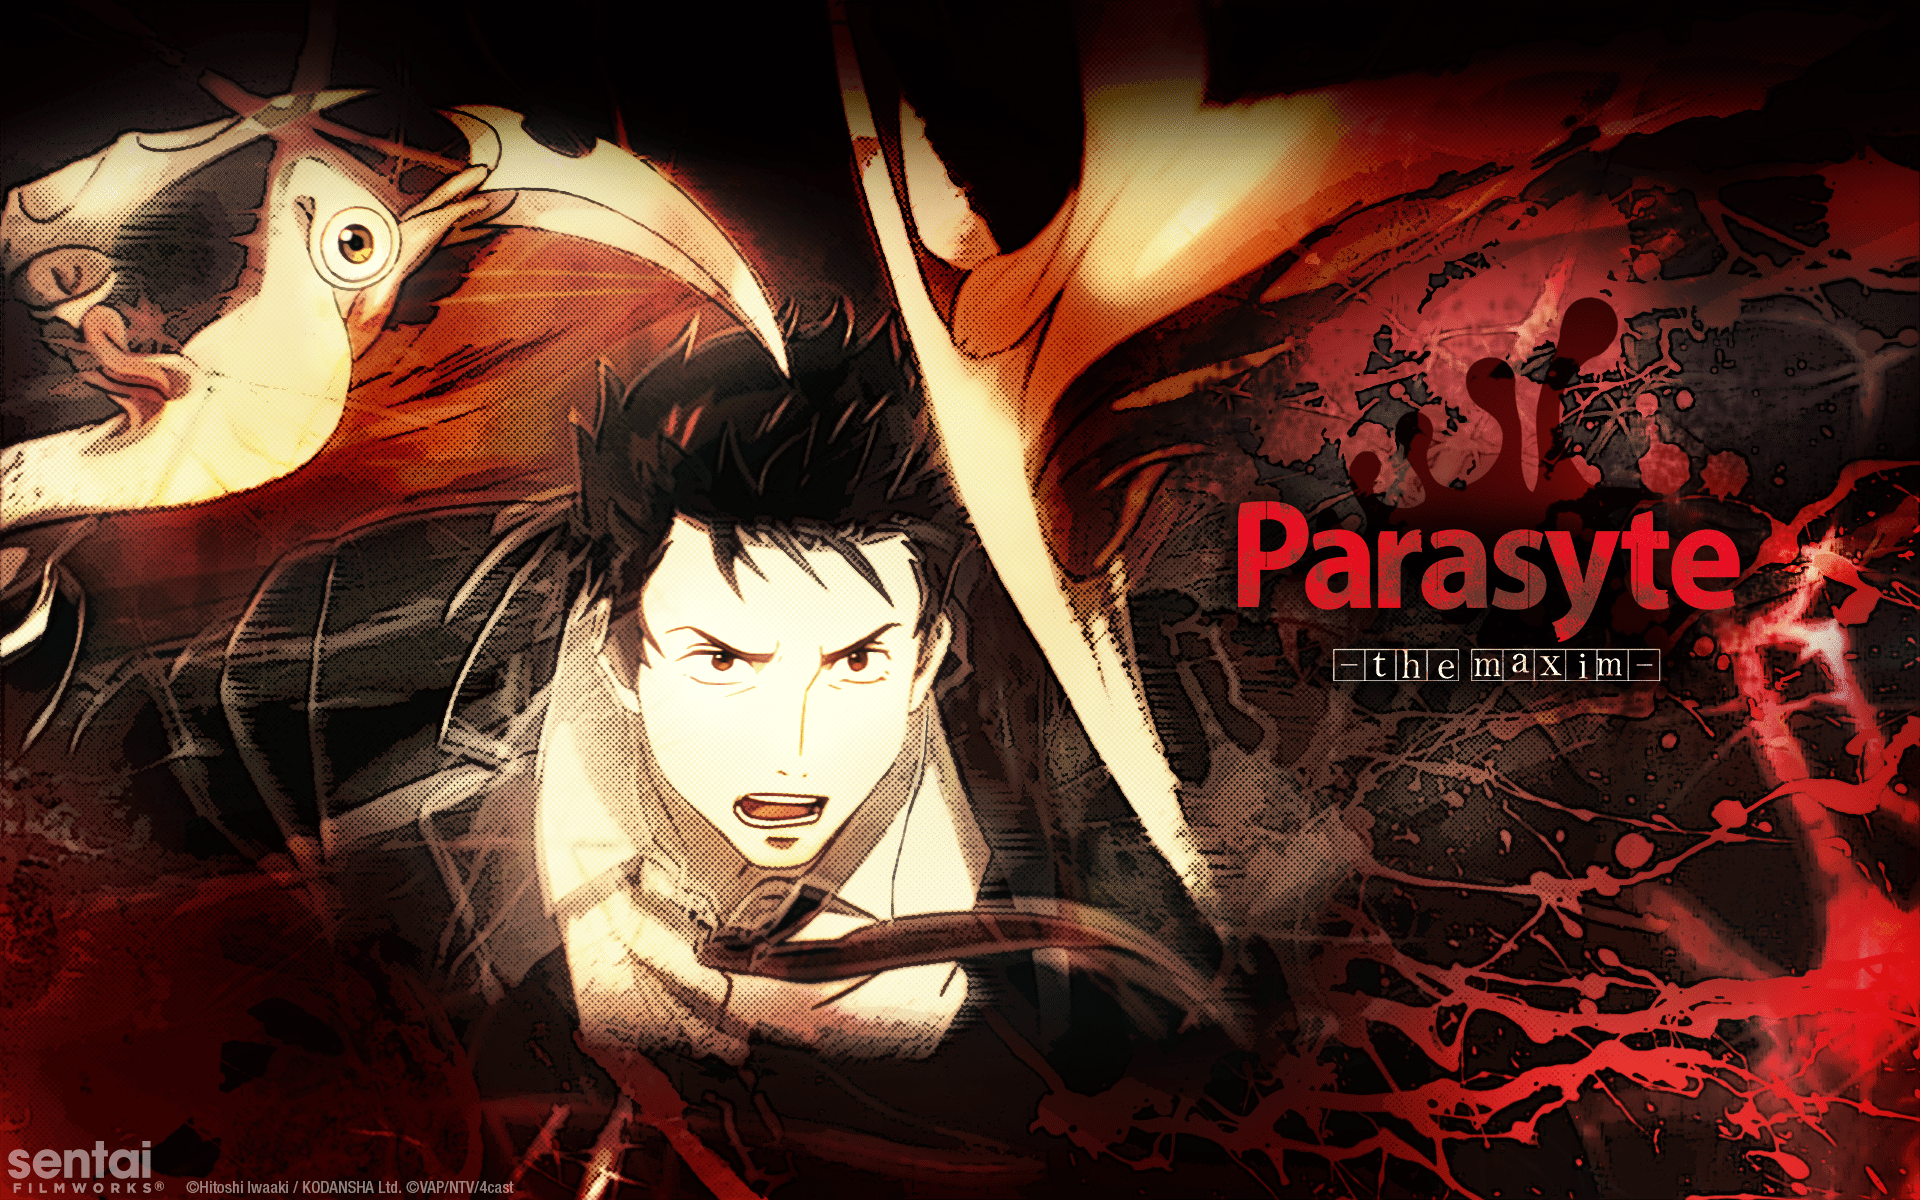 Parasyte  the maxim ] Official Shinichi Migi wallpaper from Sentai 1920x1200